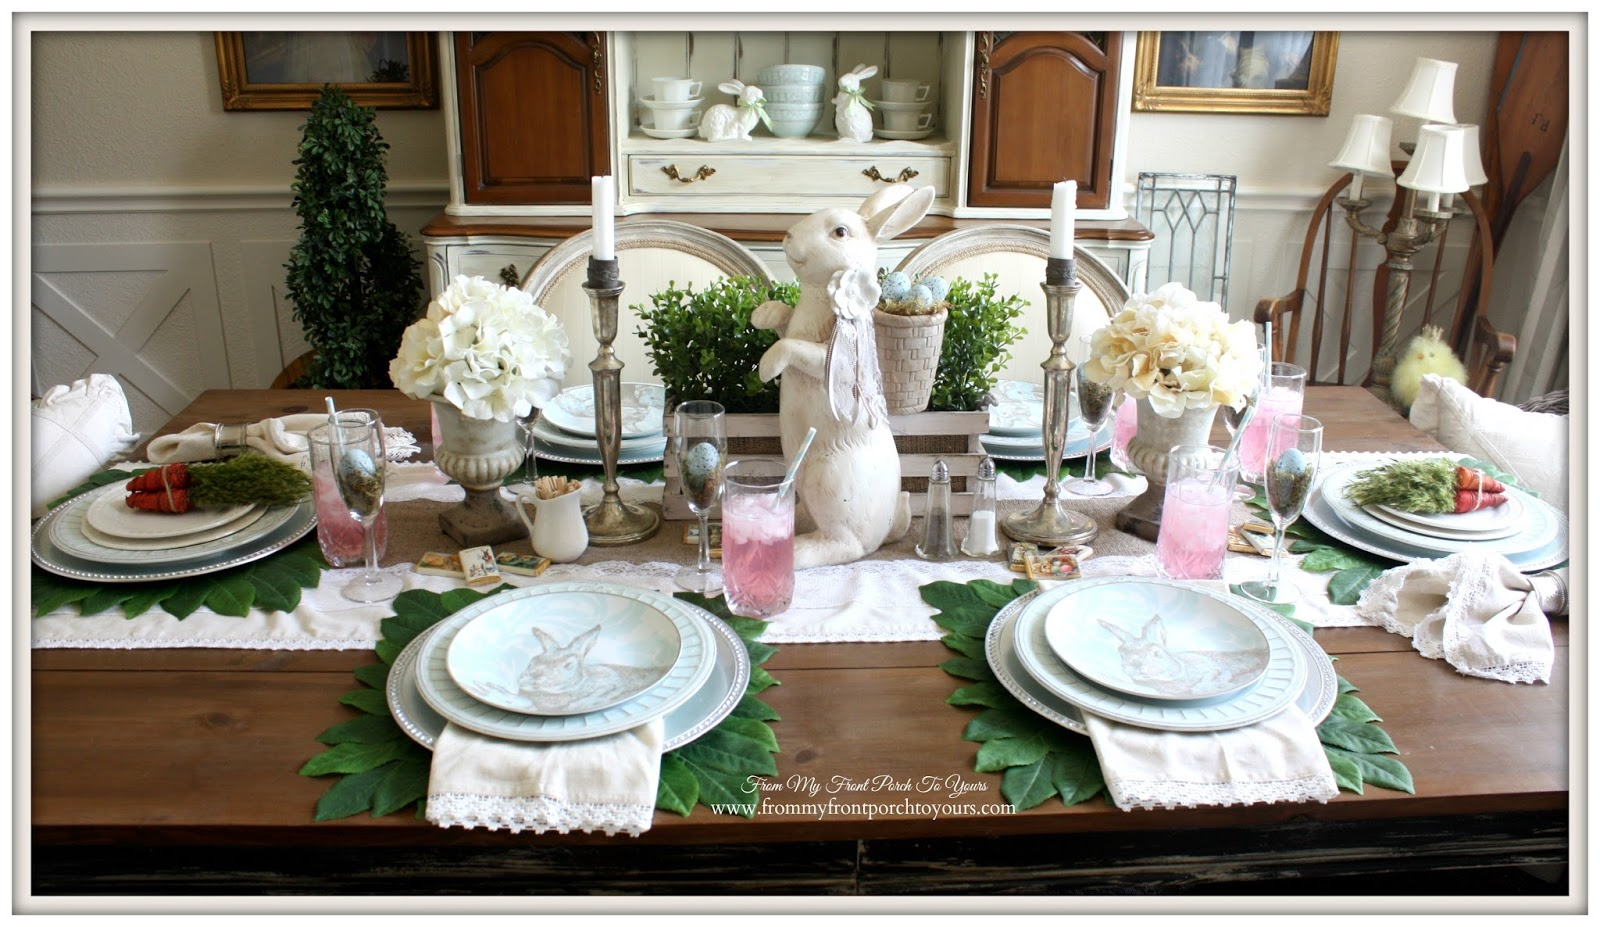 Easter Table Setting-French Farmhouse Easter Dining Room- From My Front Porch To Yours